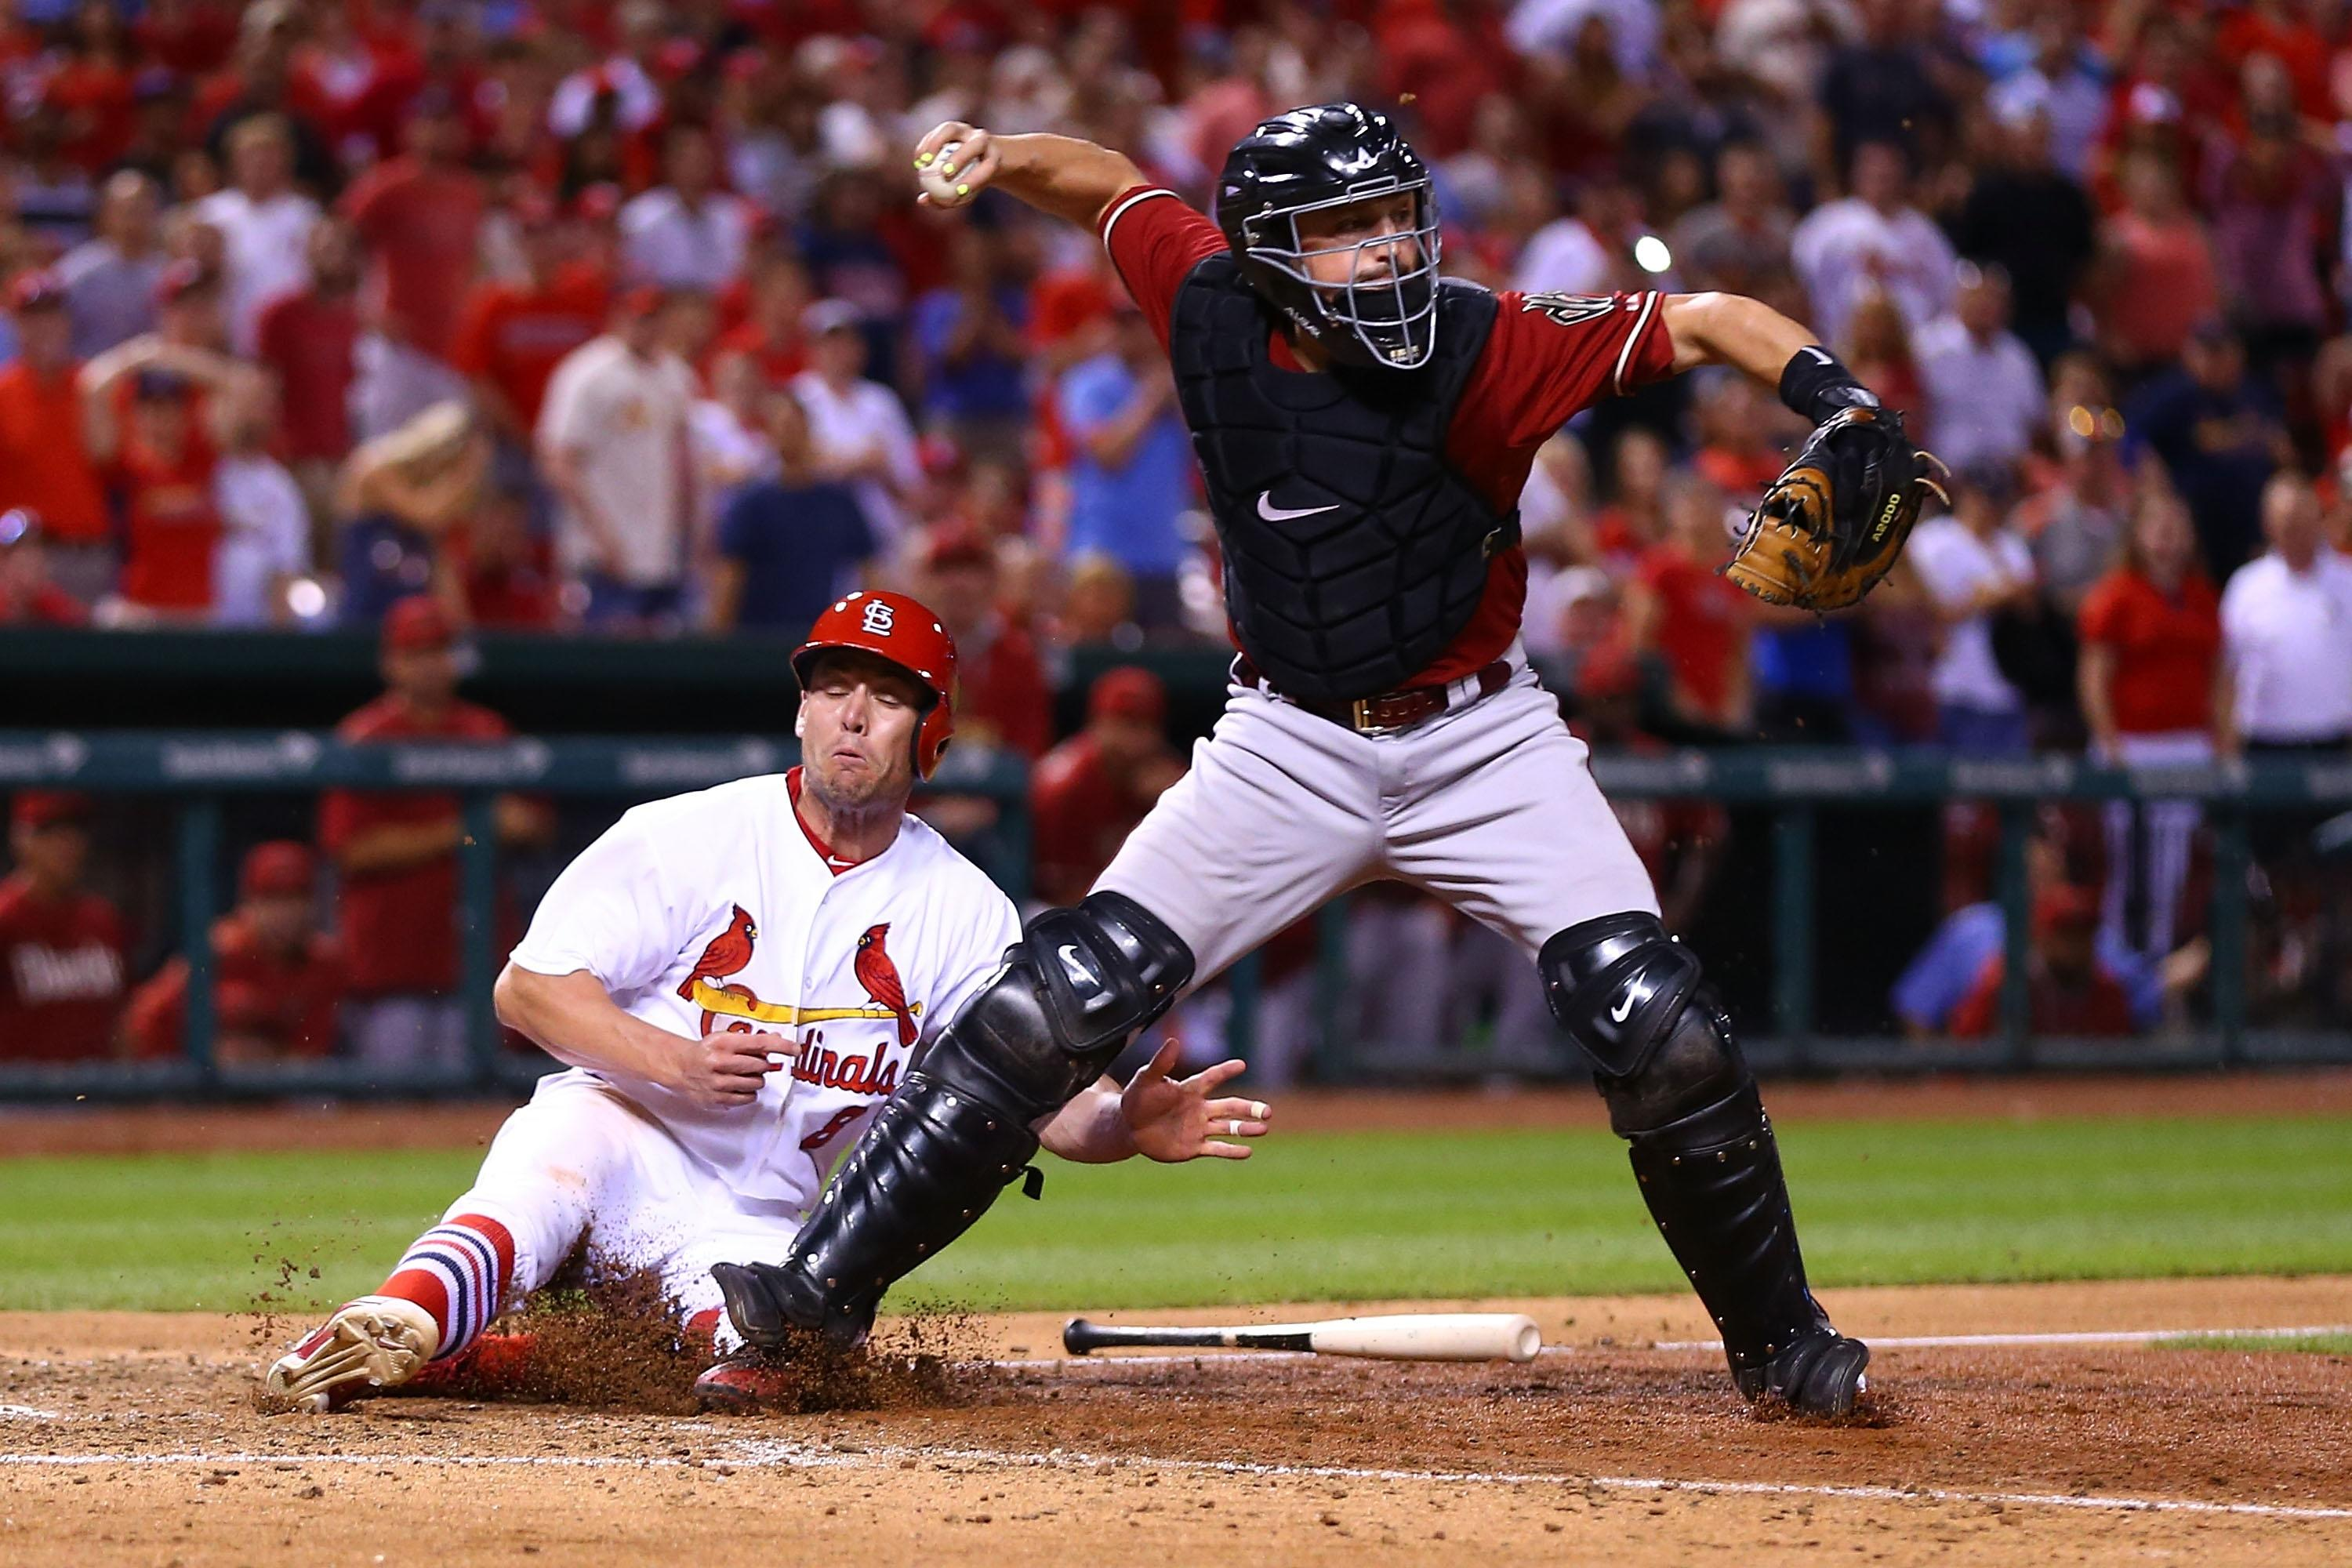 Cardinals get unlikely walk-off win after D-backs throwing error